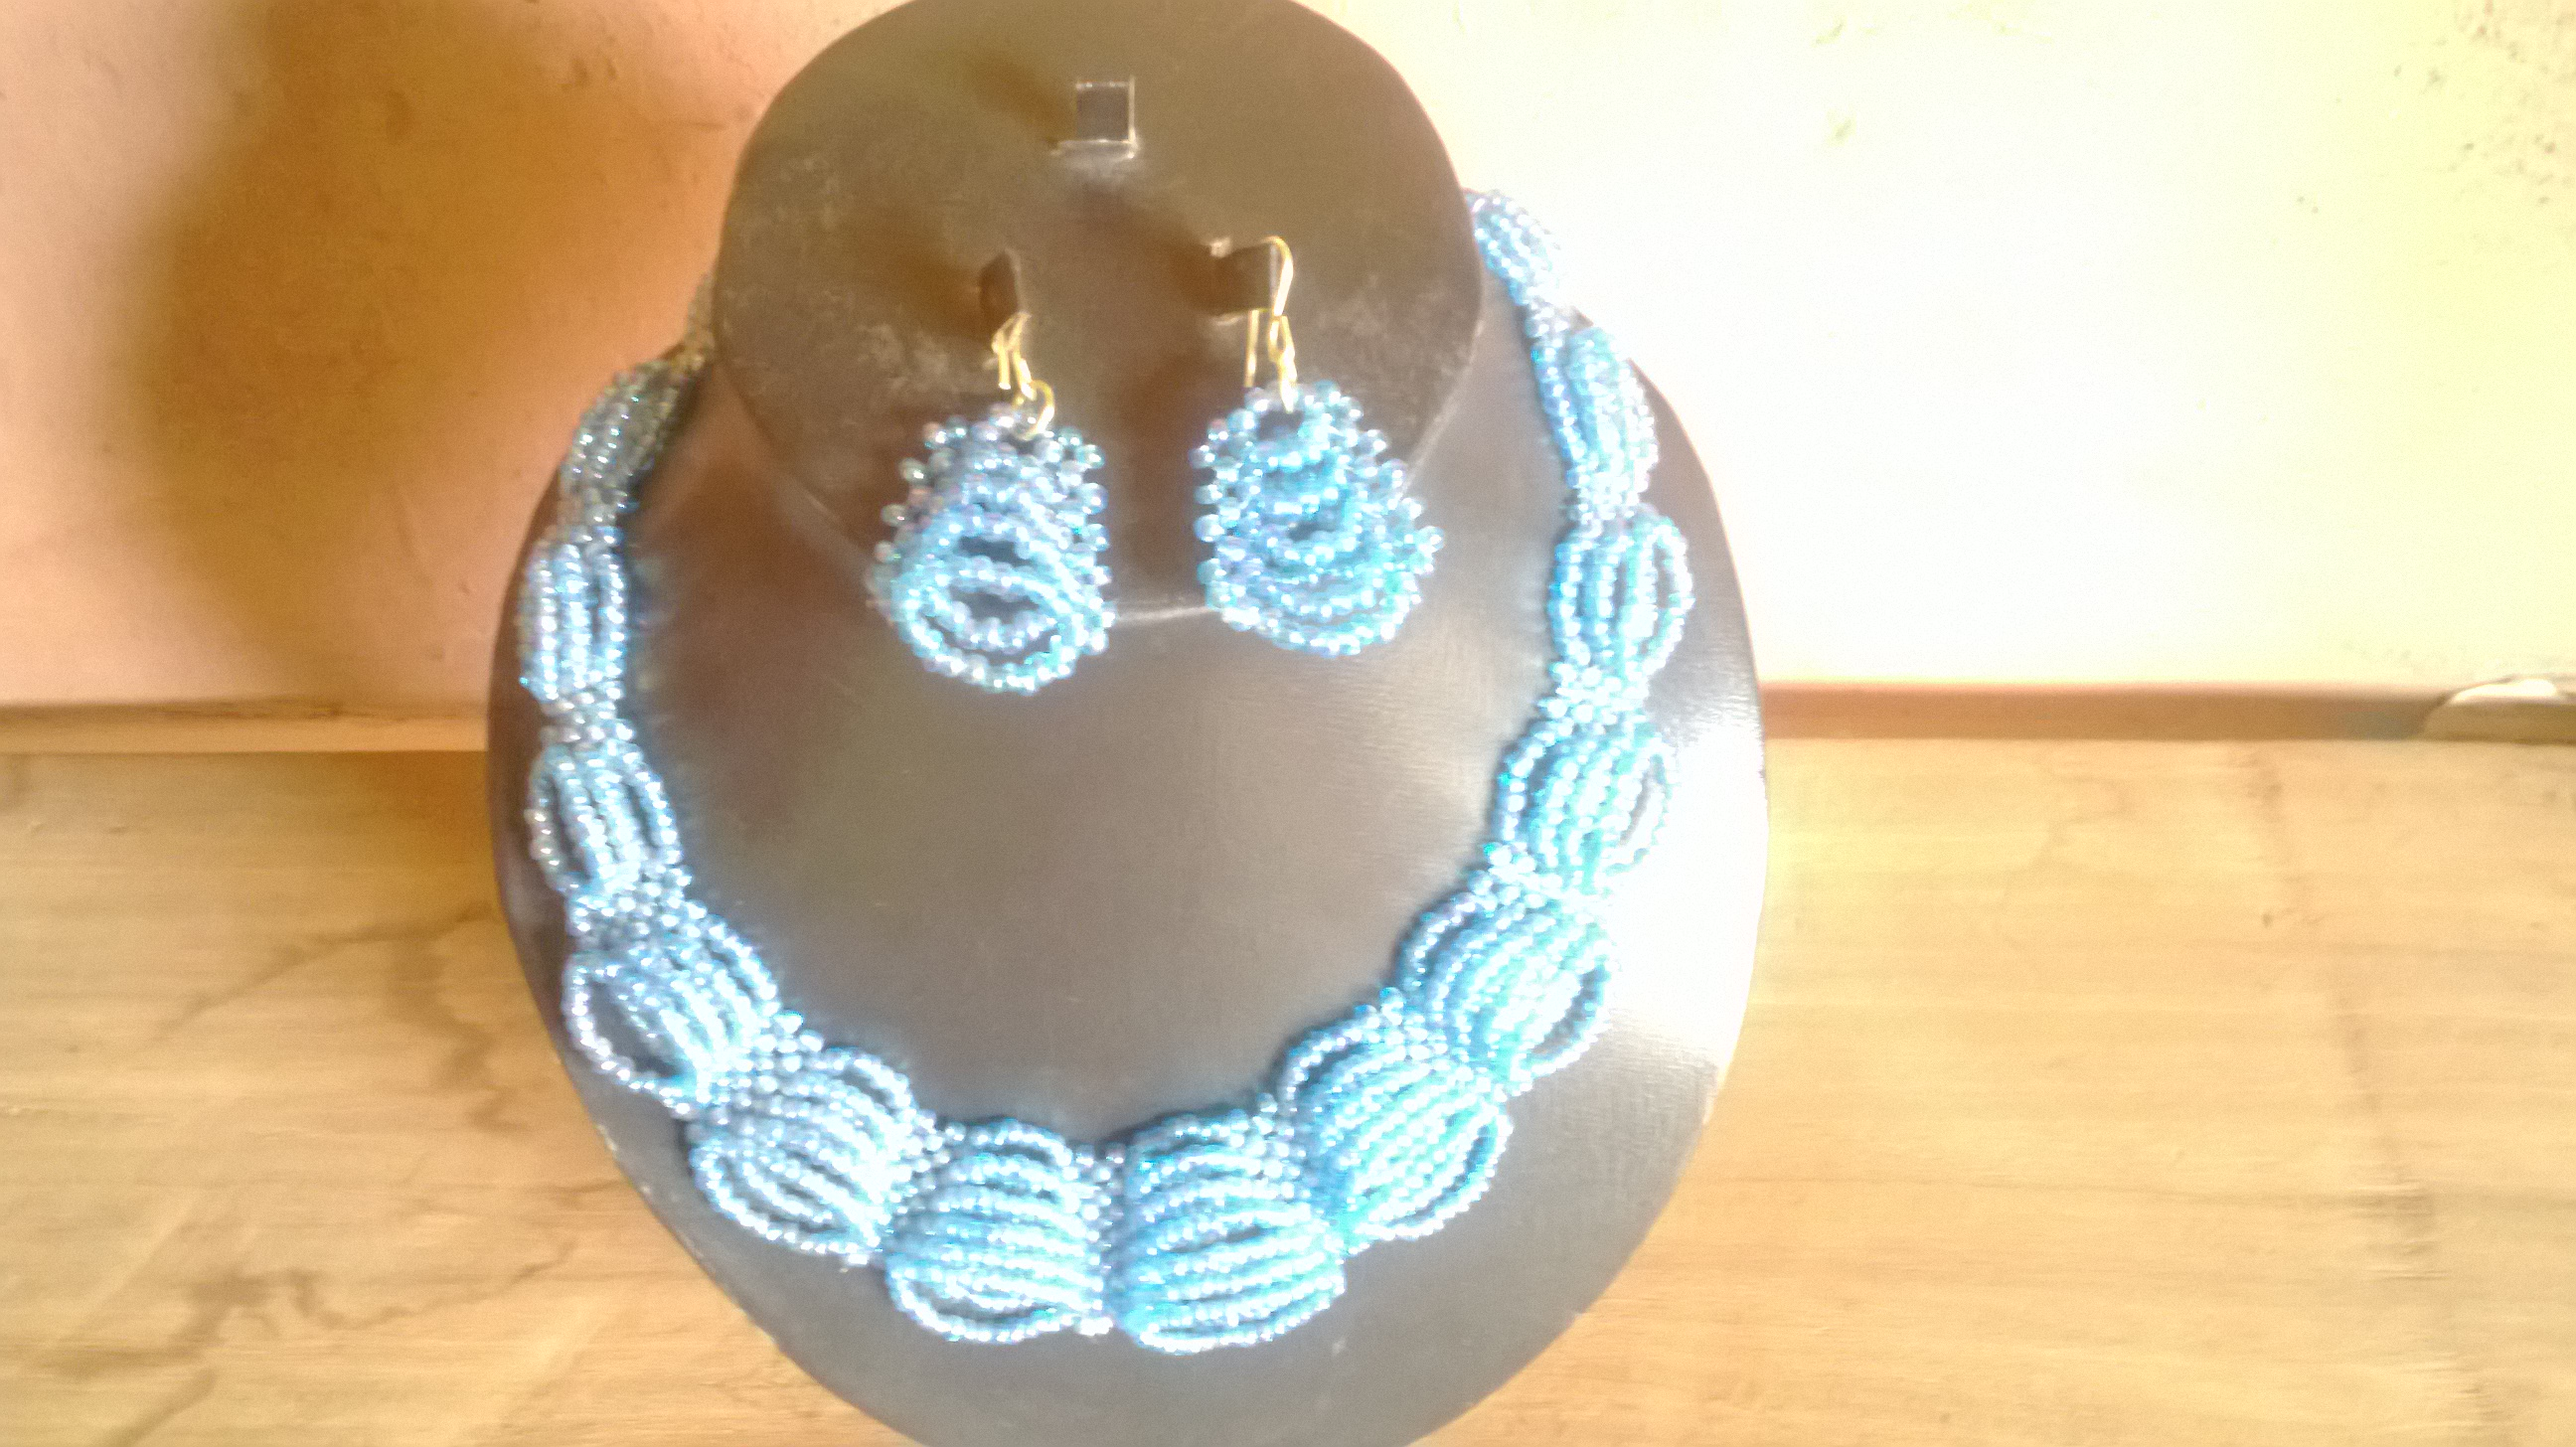 Bell ring sandbead necklace and earrings for $40 - ListingDock